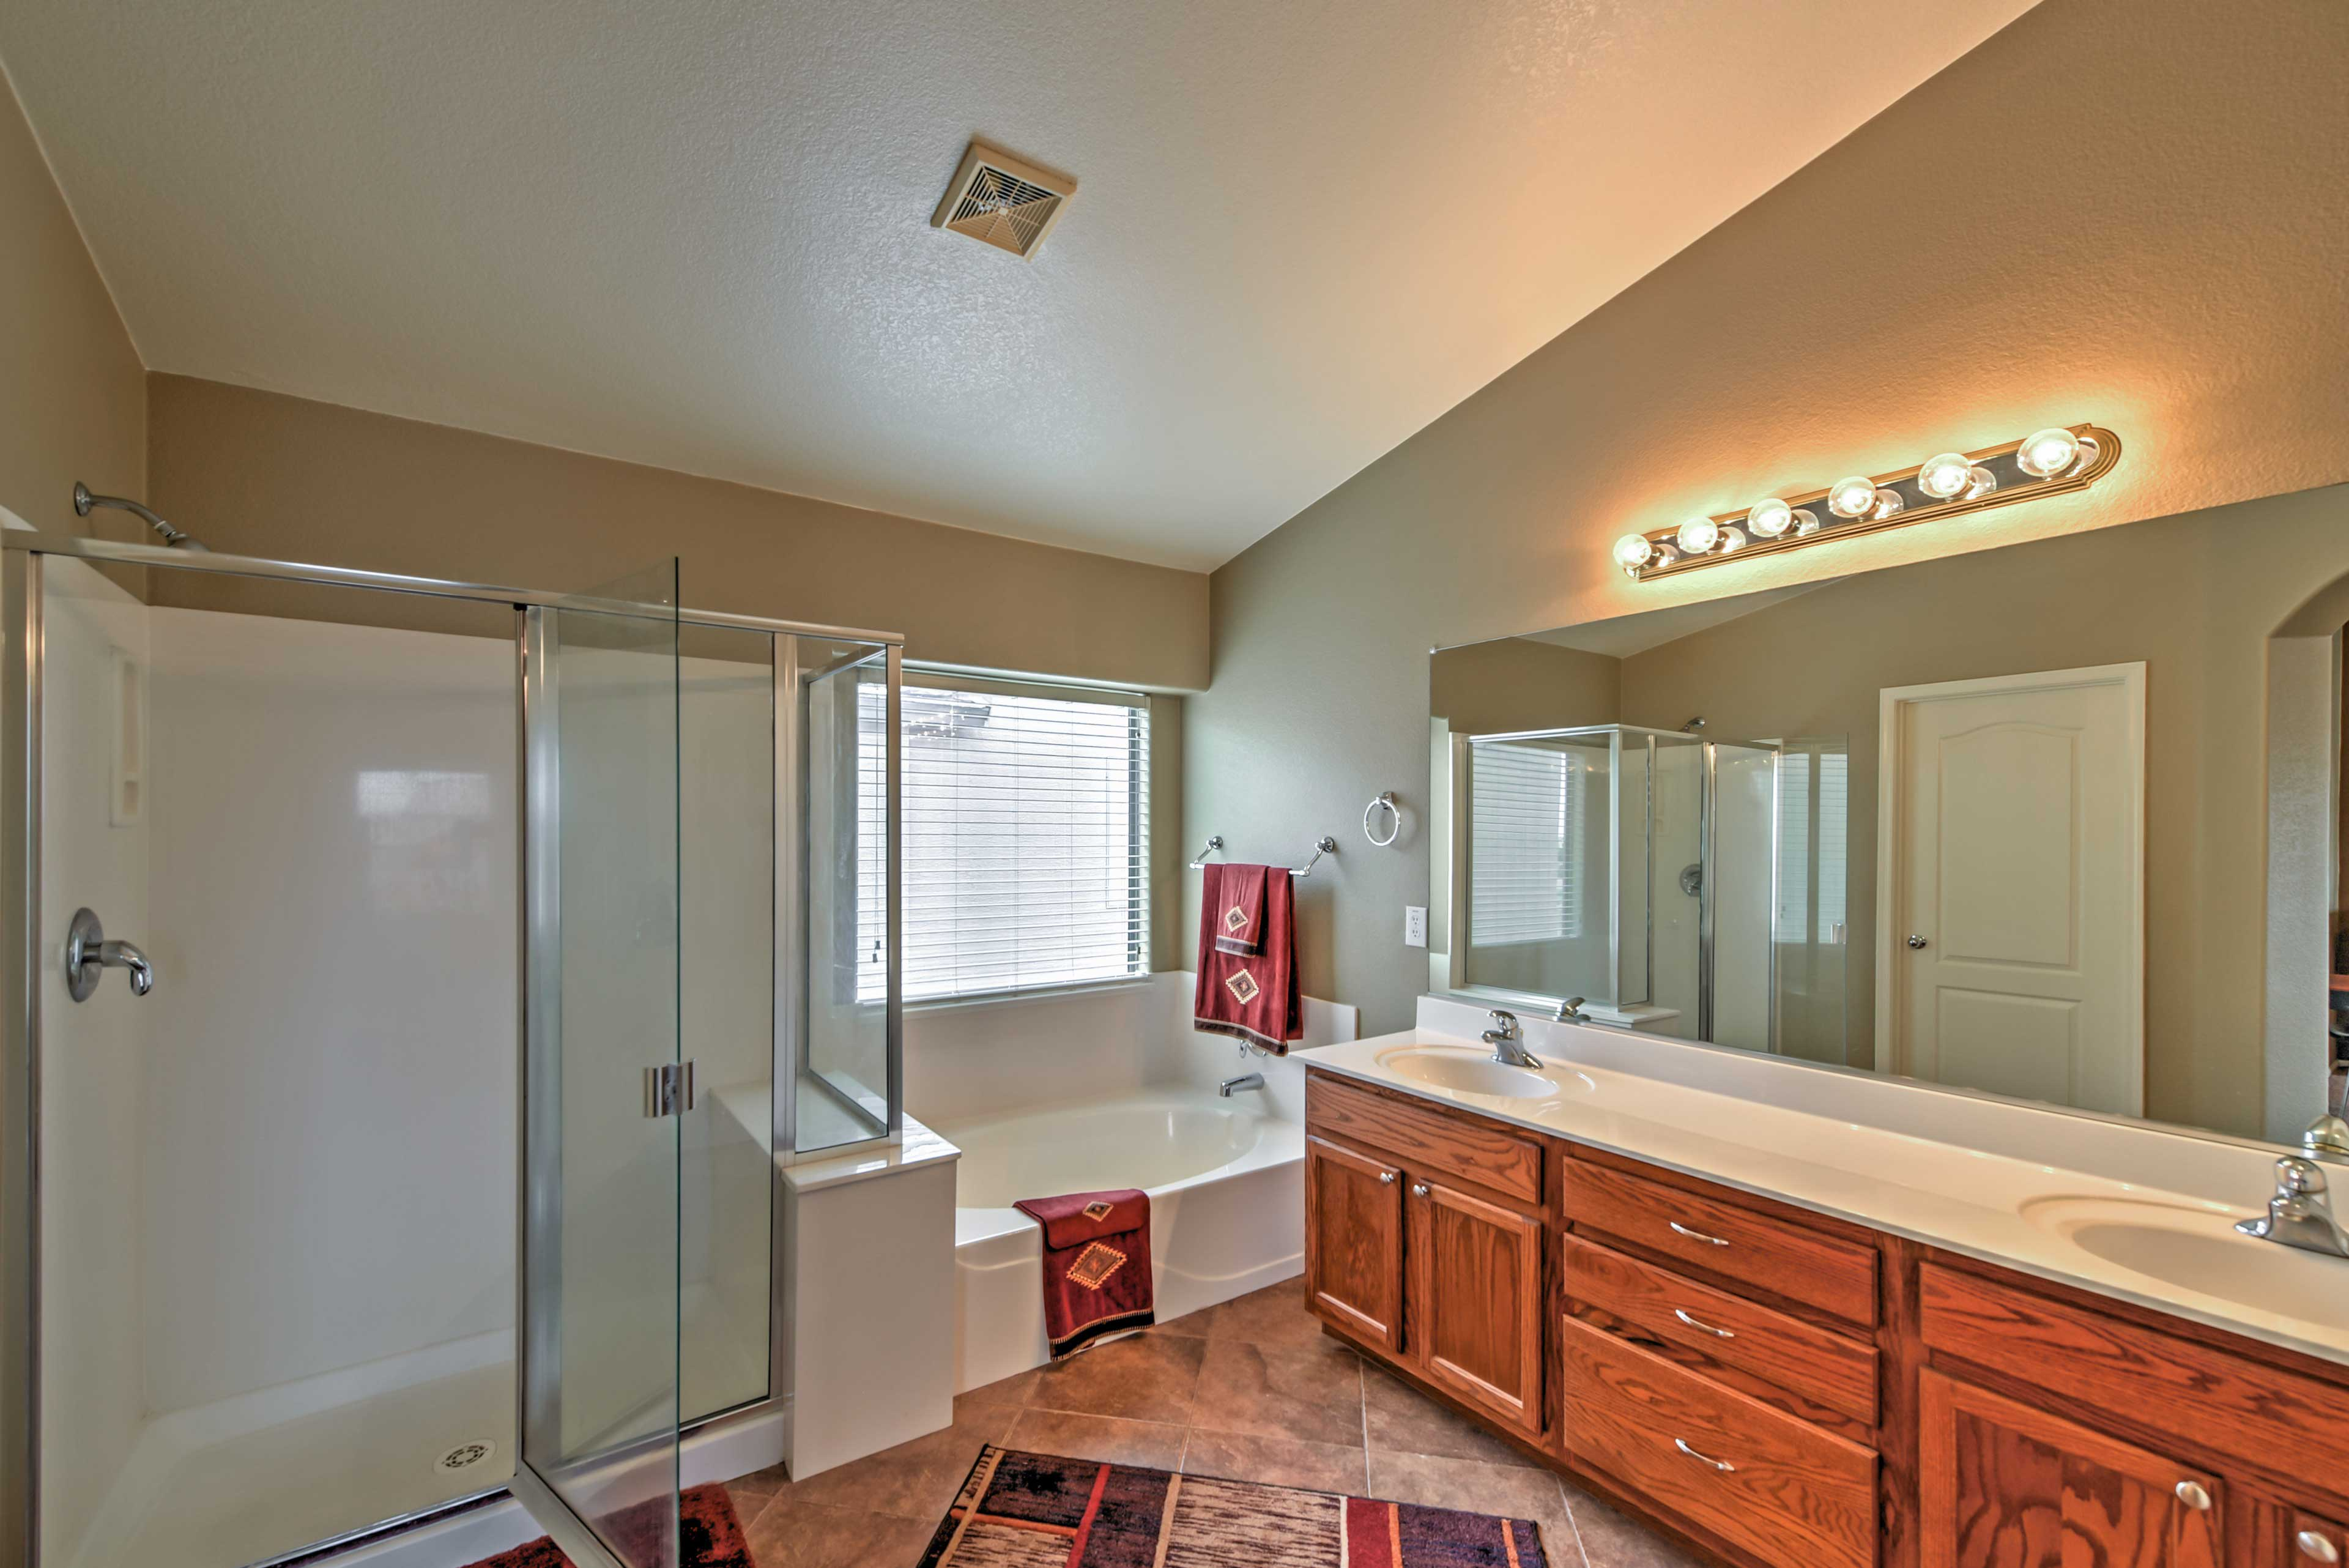 Go for a soak in the tub or rinse off in the walk-in shower - it's up to you!